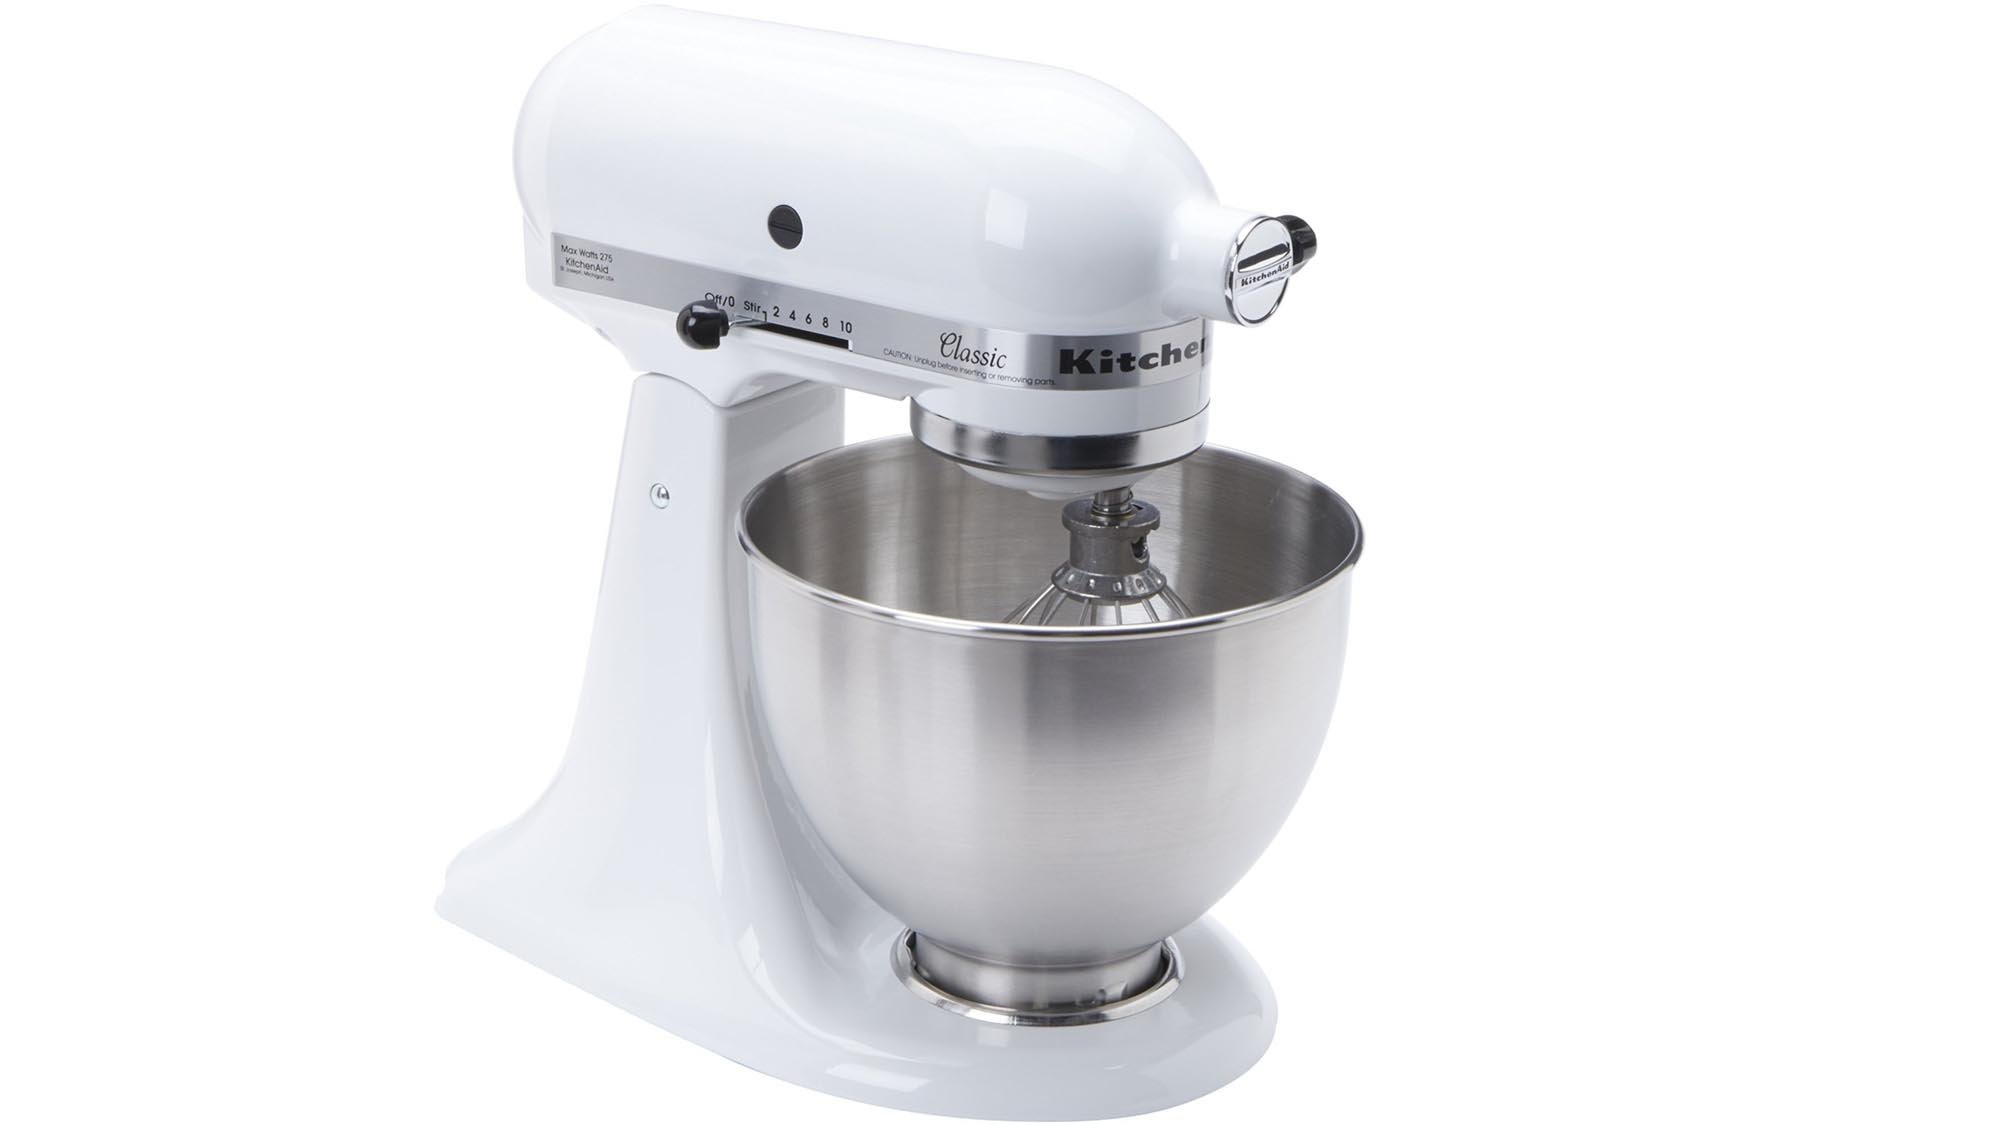 22fef9762d9 The best stand mixers to buy. 1. KitchenAid K45SS Classic Mixer  The  classiest-looking stand mixer around